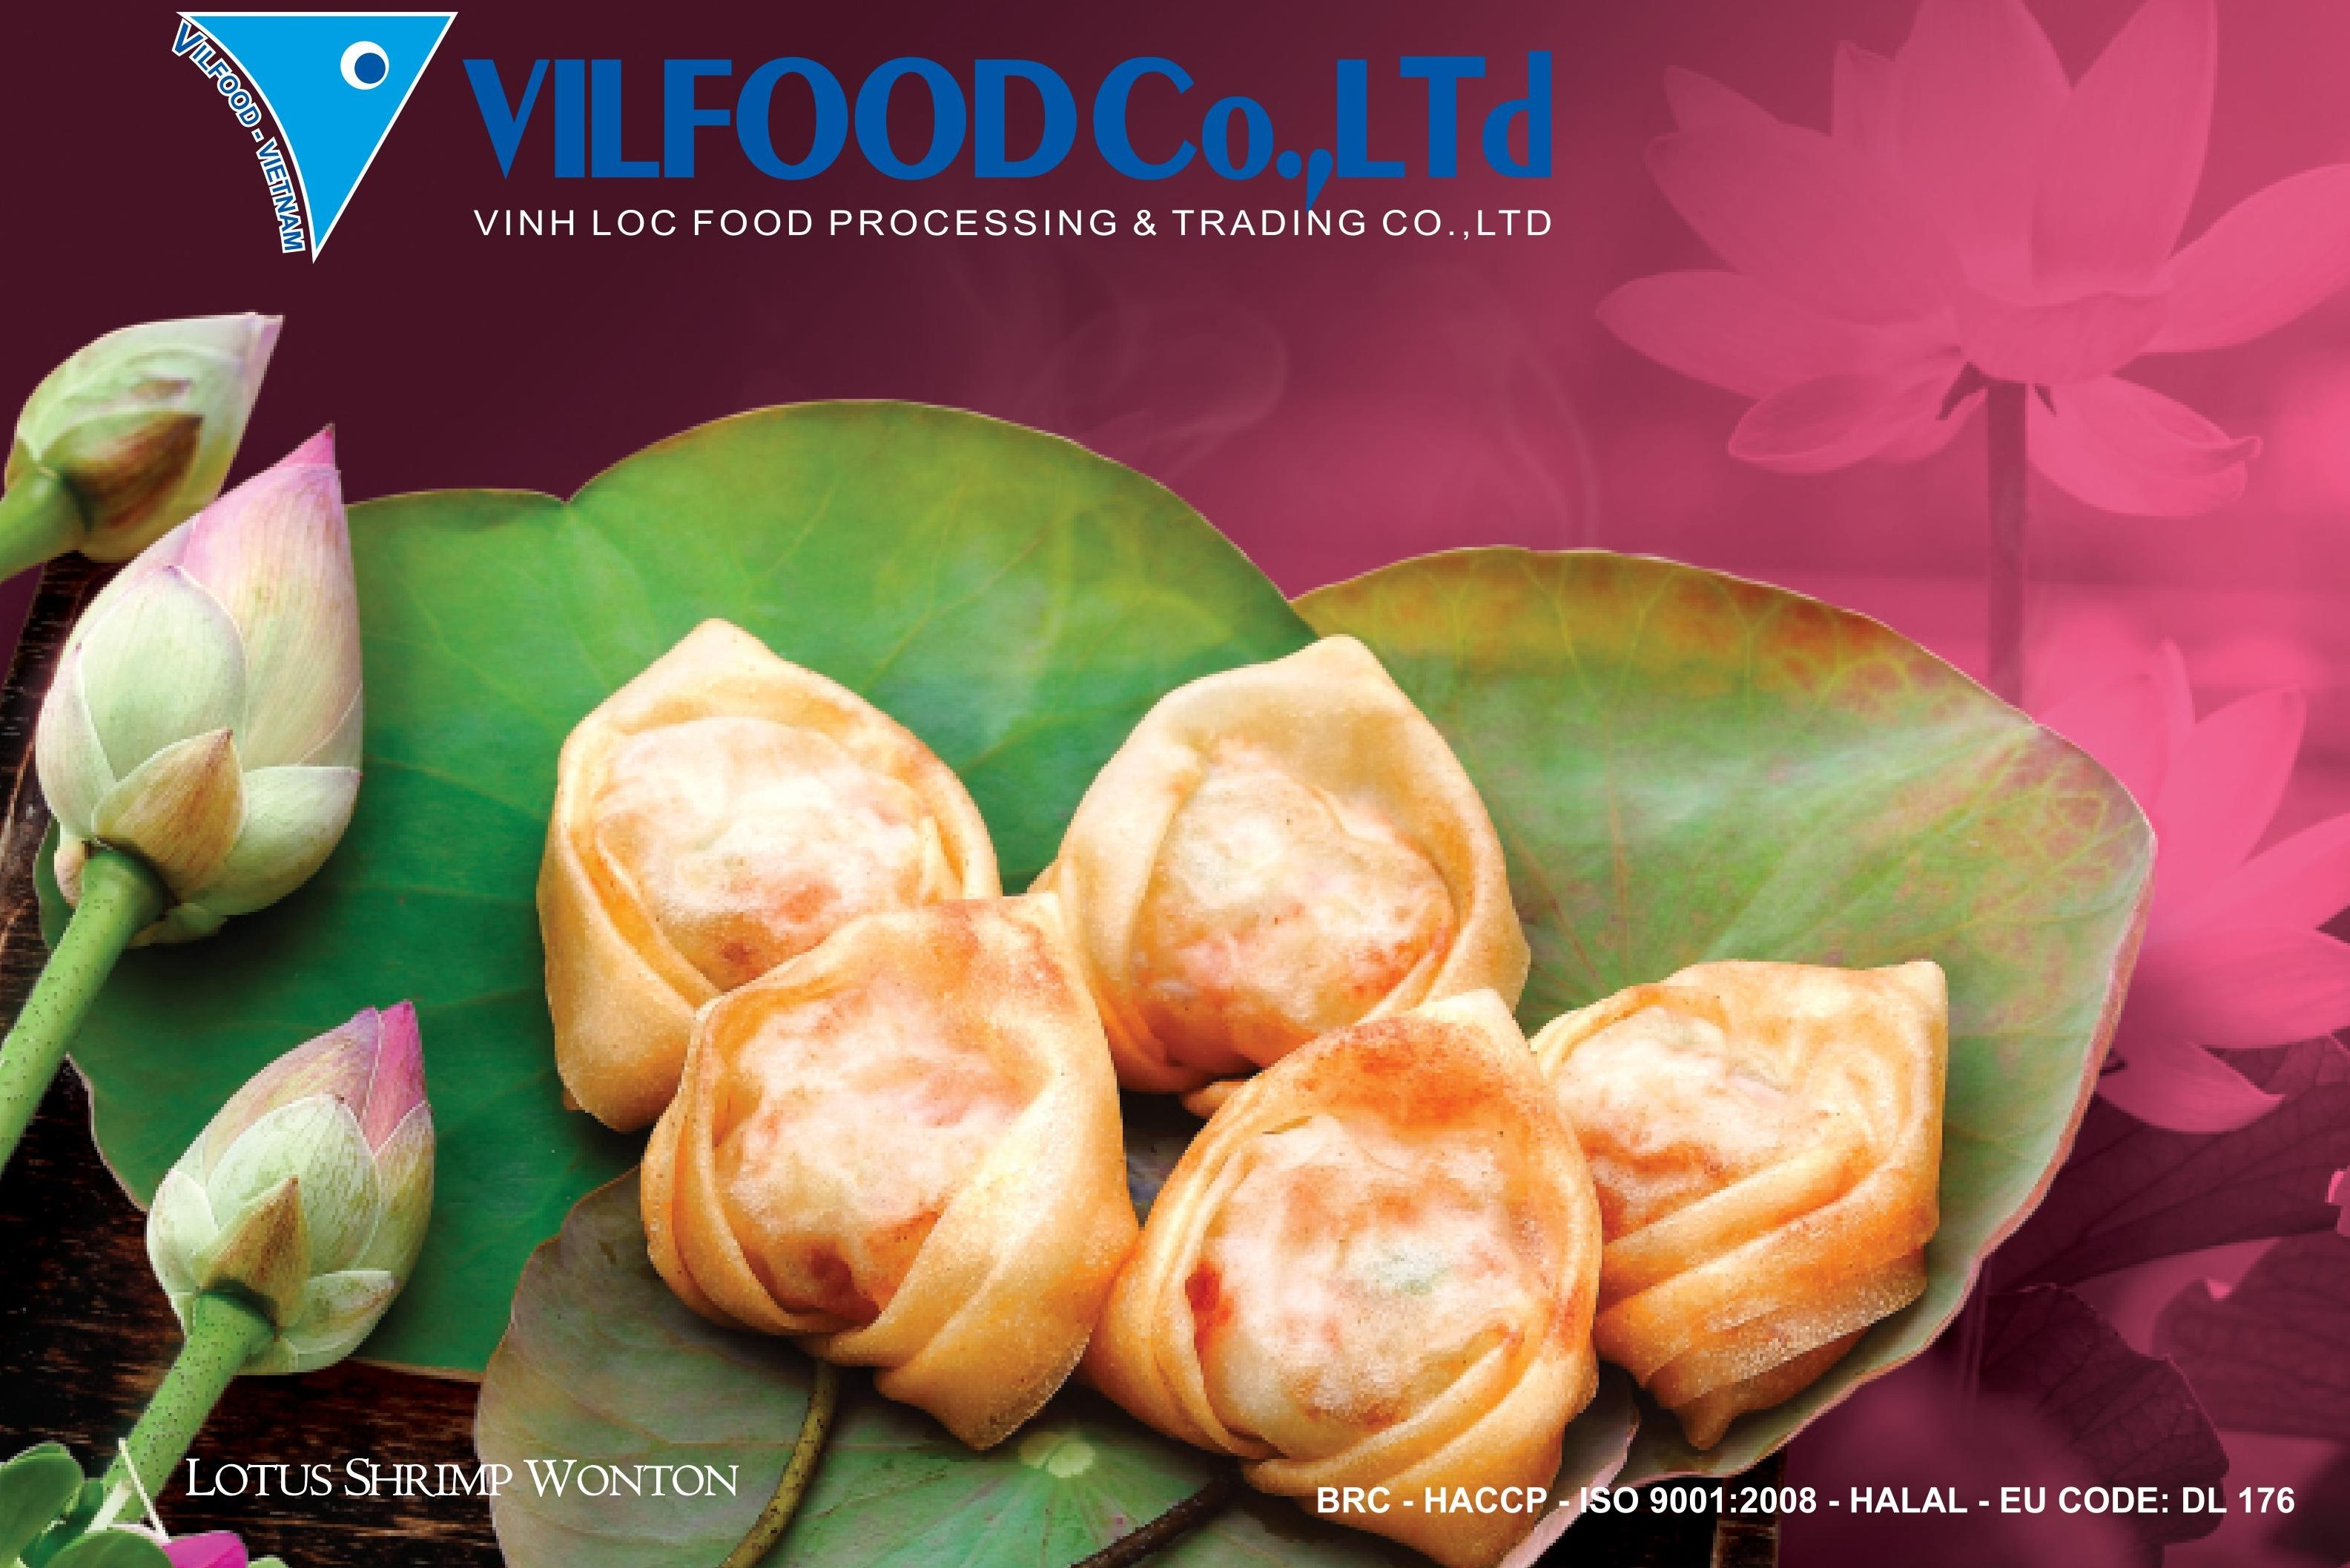 Vilfood Co., LTD Main Image